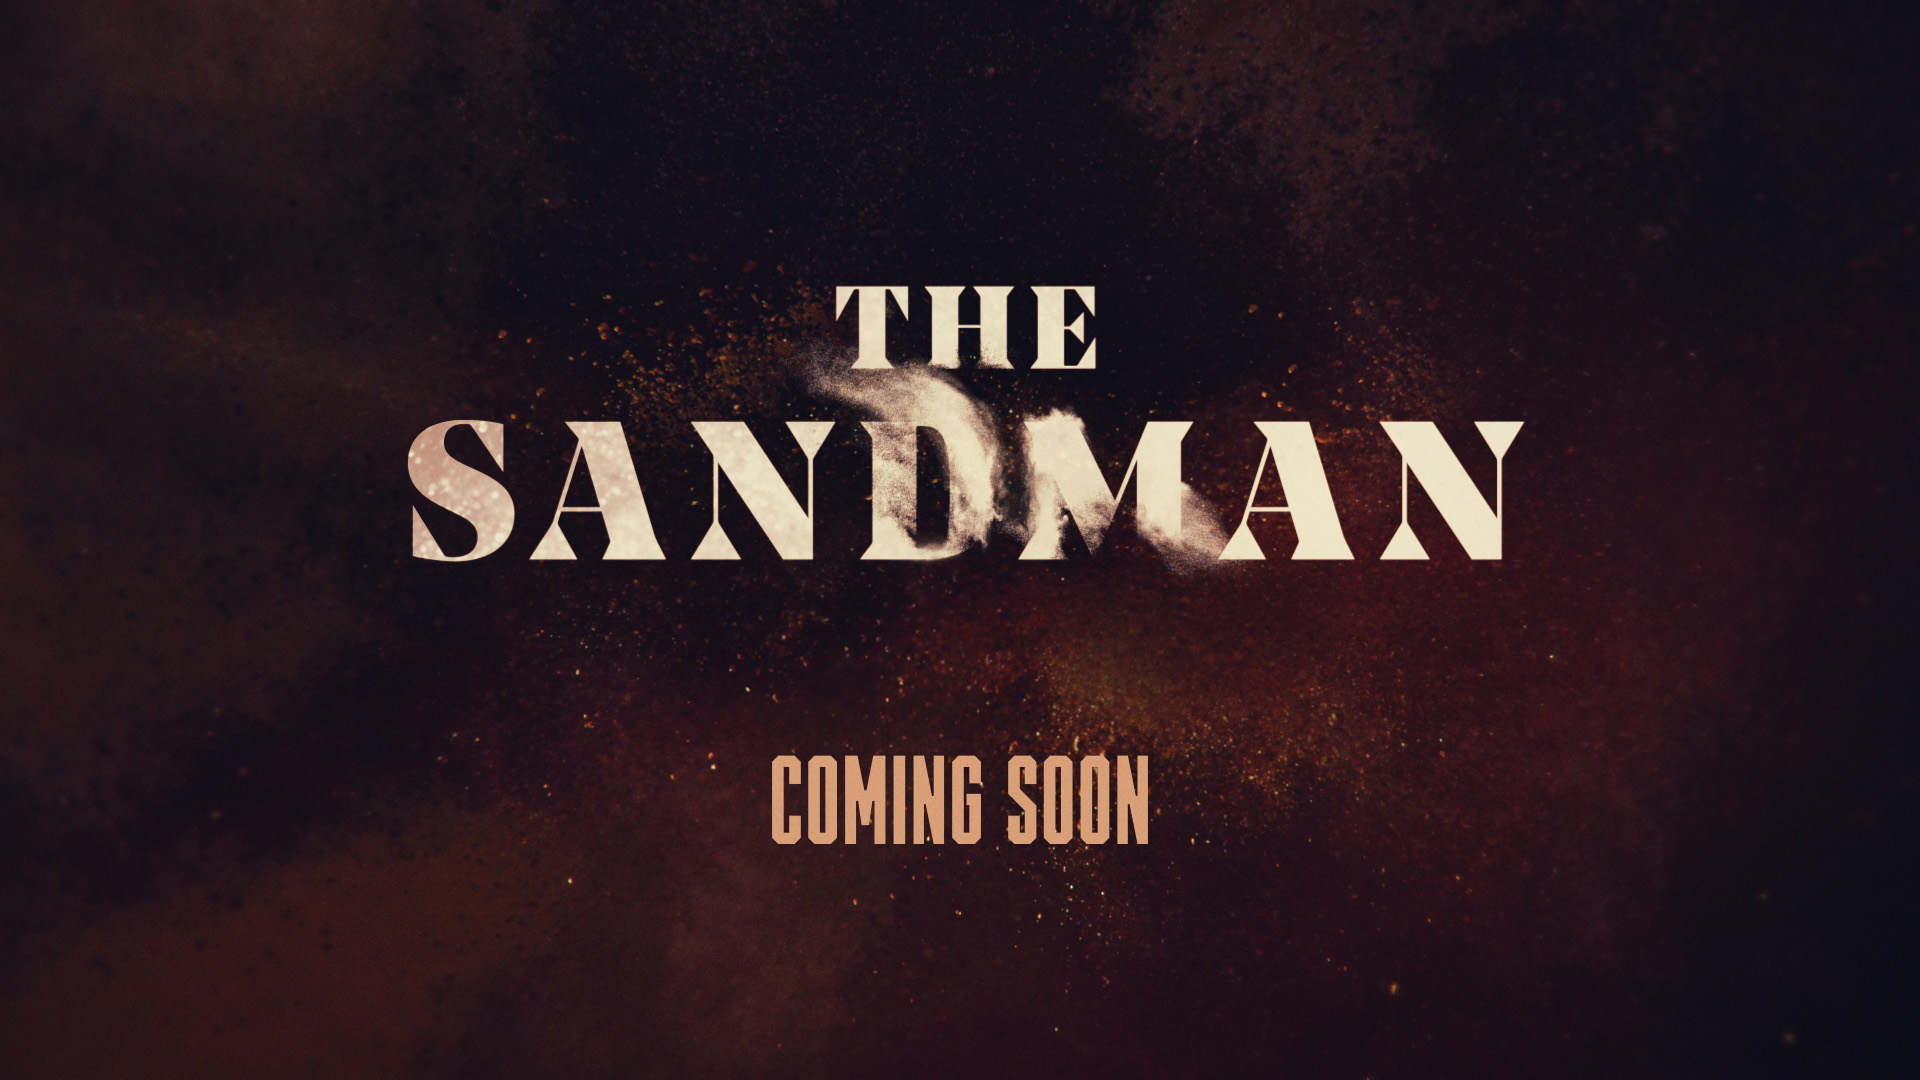 Design style frame 02 for SYFY Original The Sandman promo